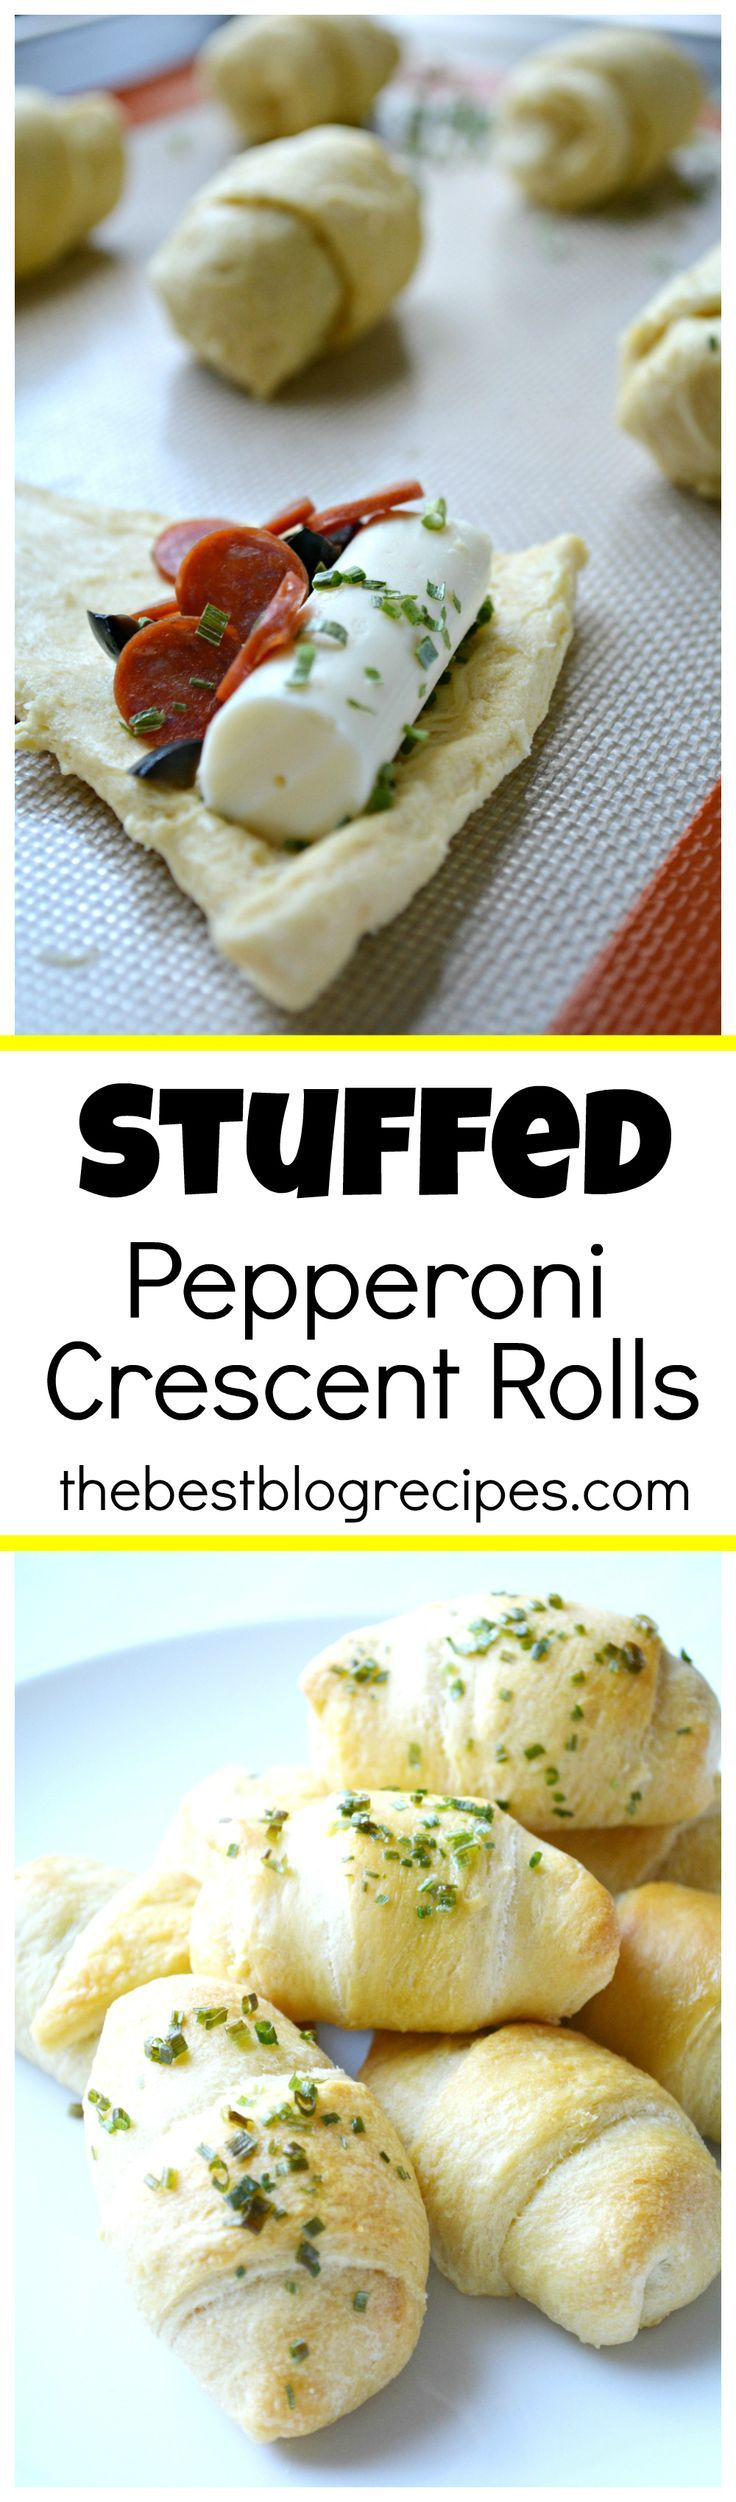 Stuffed Pepperoni Pizza Crescent Rolls are so easy to make, there is minimal clean up and your family will love them!